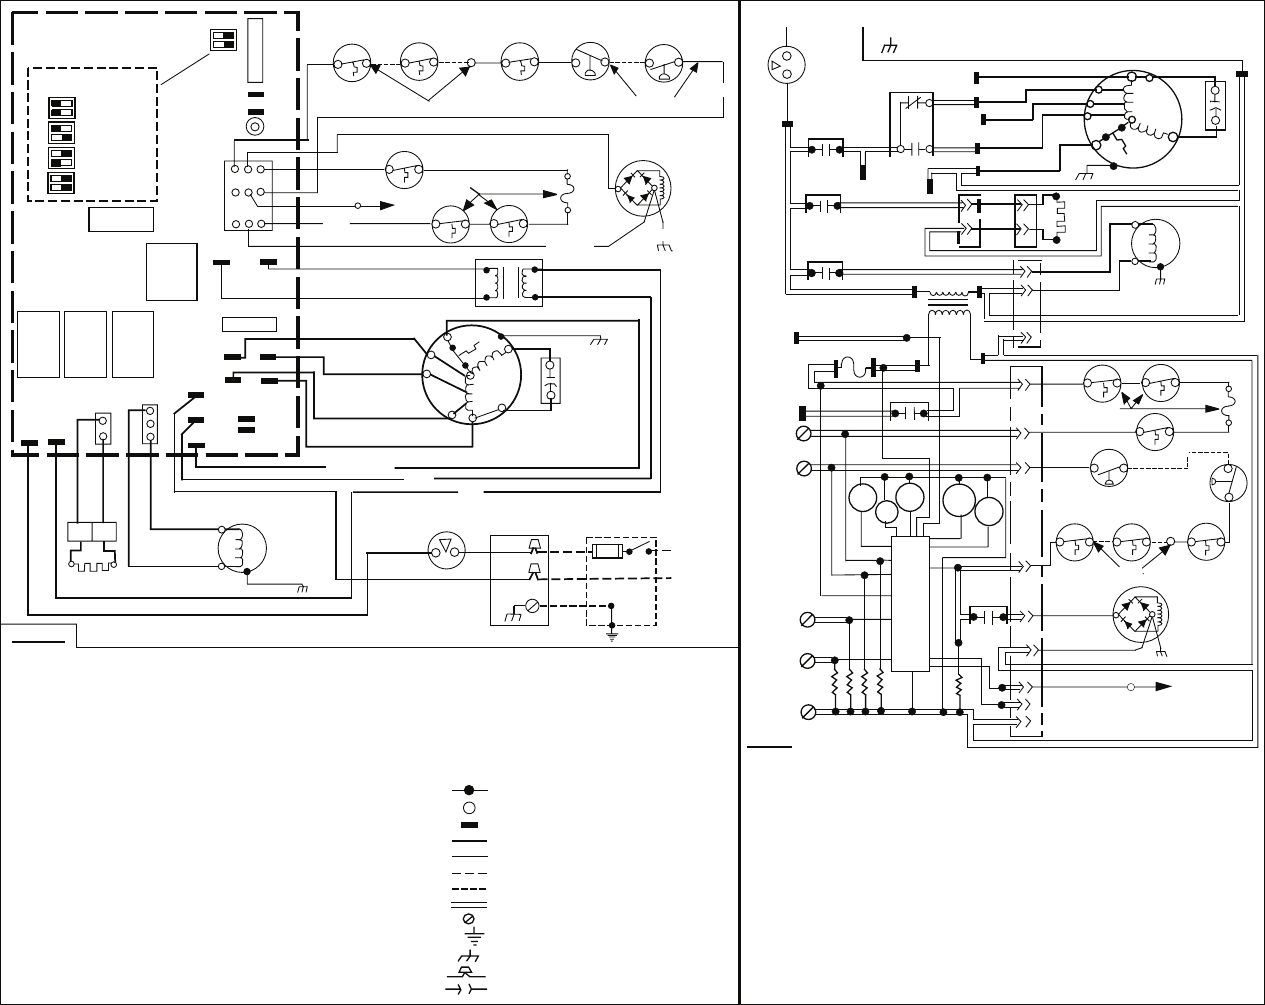 schematic of bryant gas furnace wiring diagram